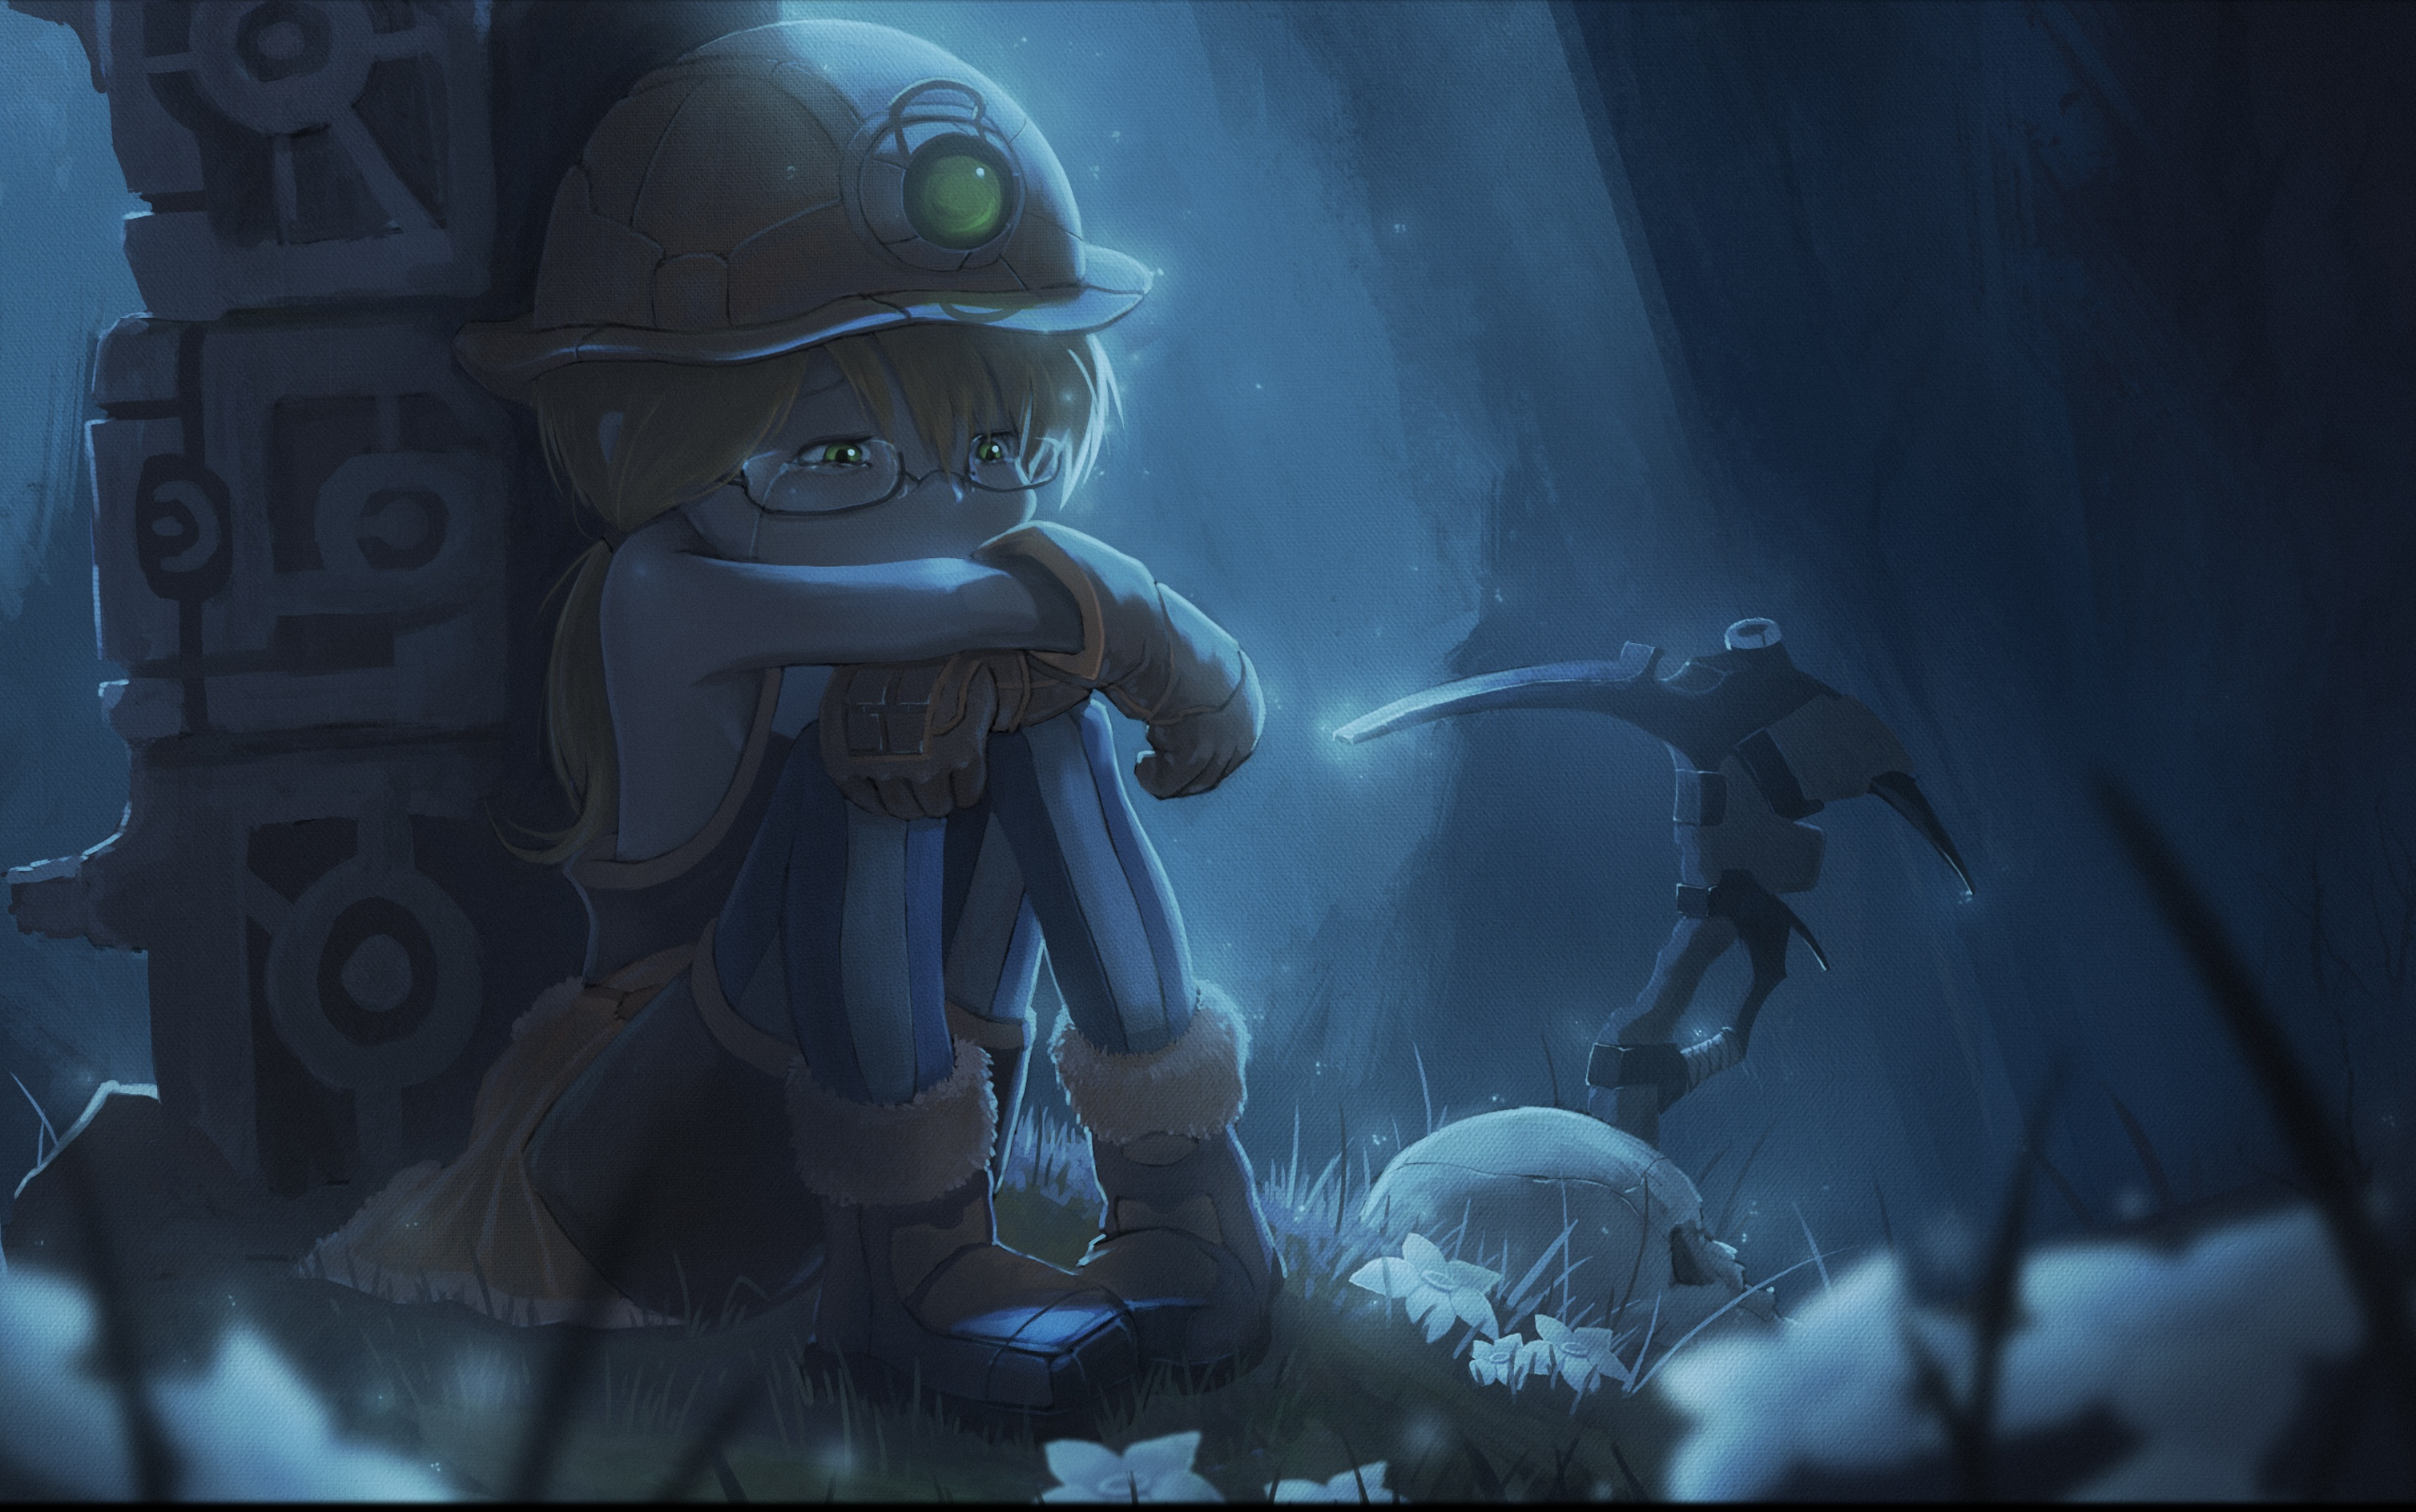 Wallpapers : Riko Made in Abyss, Made in Abyss, pickaxes, Miner